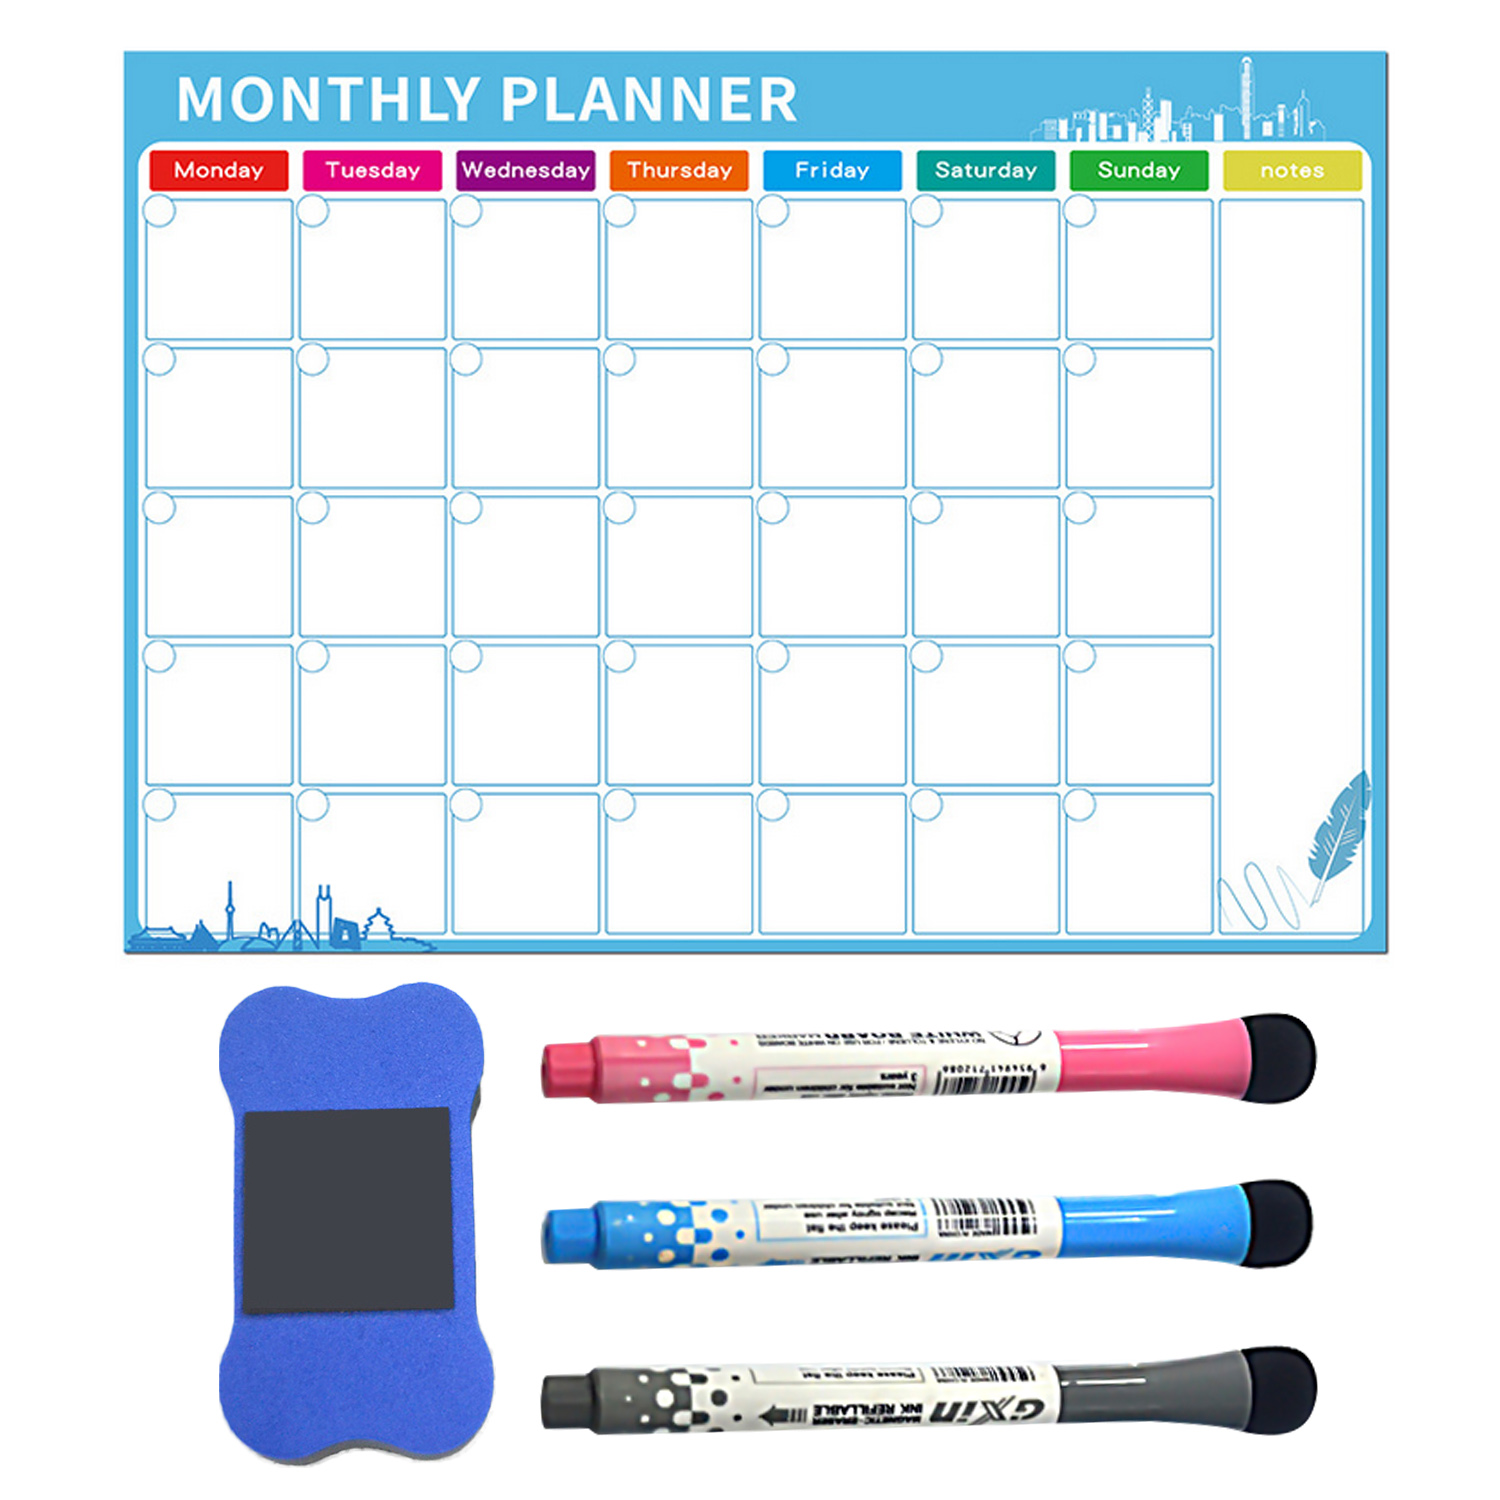 Magnetic Monthly Planner Dry Erase Calendar Board Refrigerator Magnet With 3pcs Markers For Home Office Shops 40 X 30cm 2020